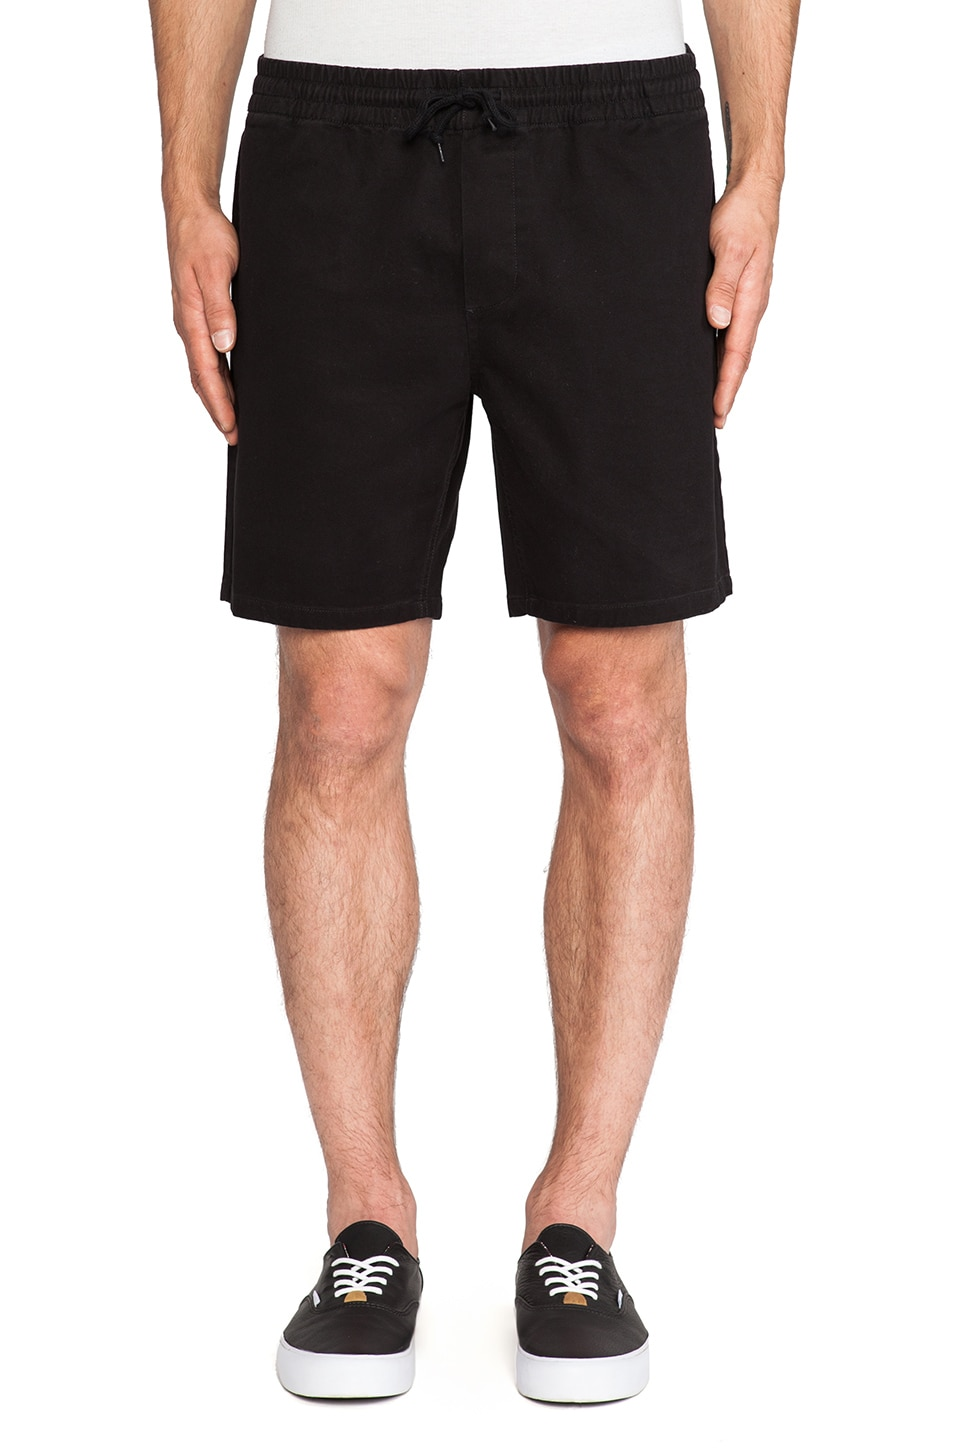 Obey 5th St. Chino Short in Black